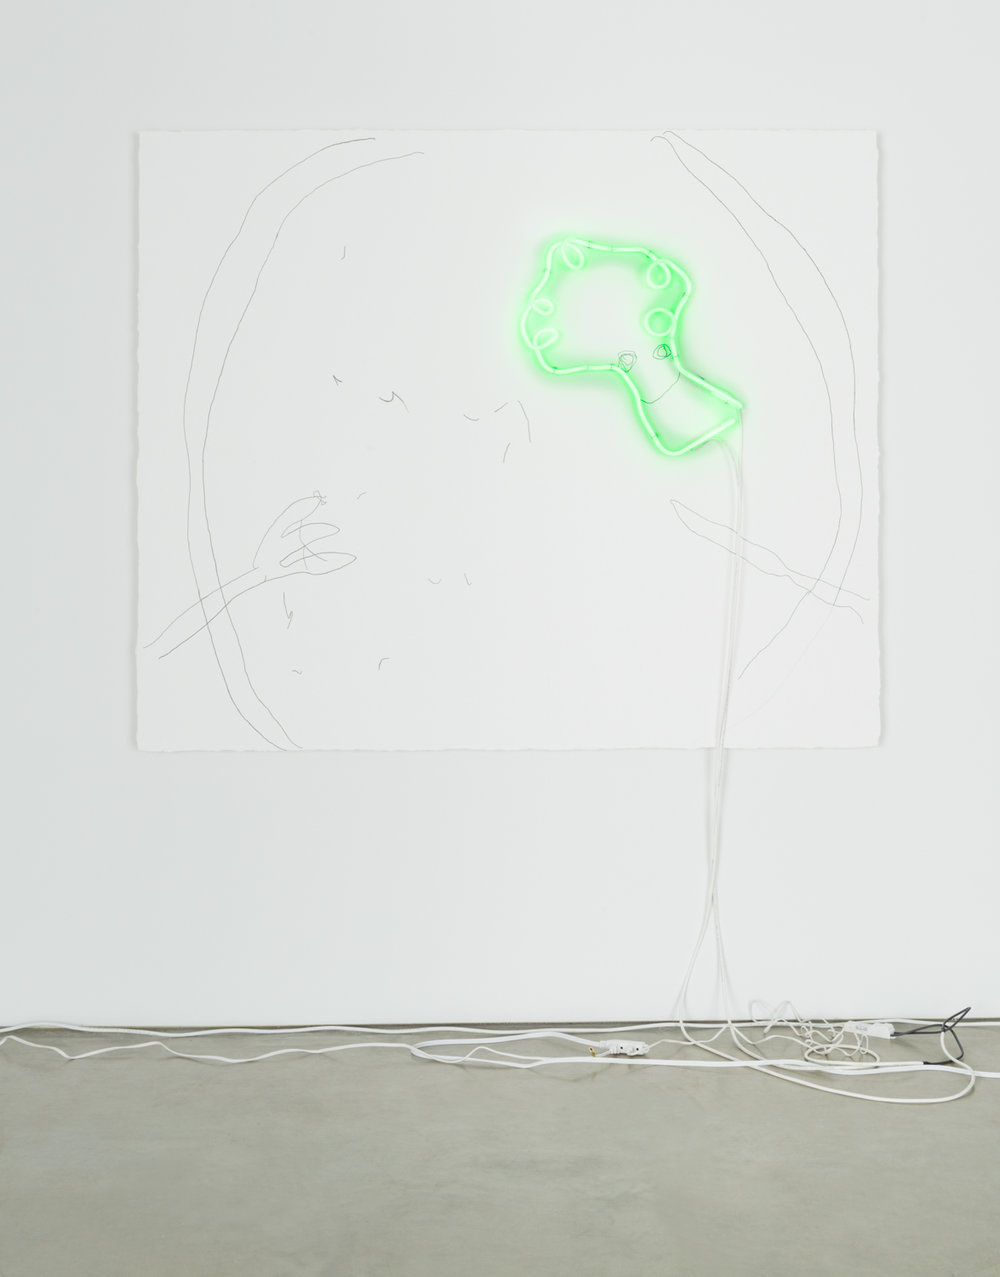 CD Wu not yet titled 2016 Acrylic gesso, pencil, and neon on canvas 60h x 72w in CDW008